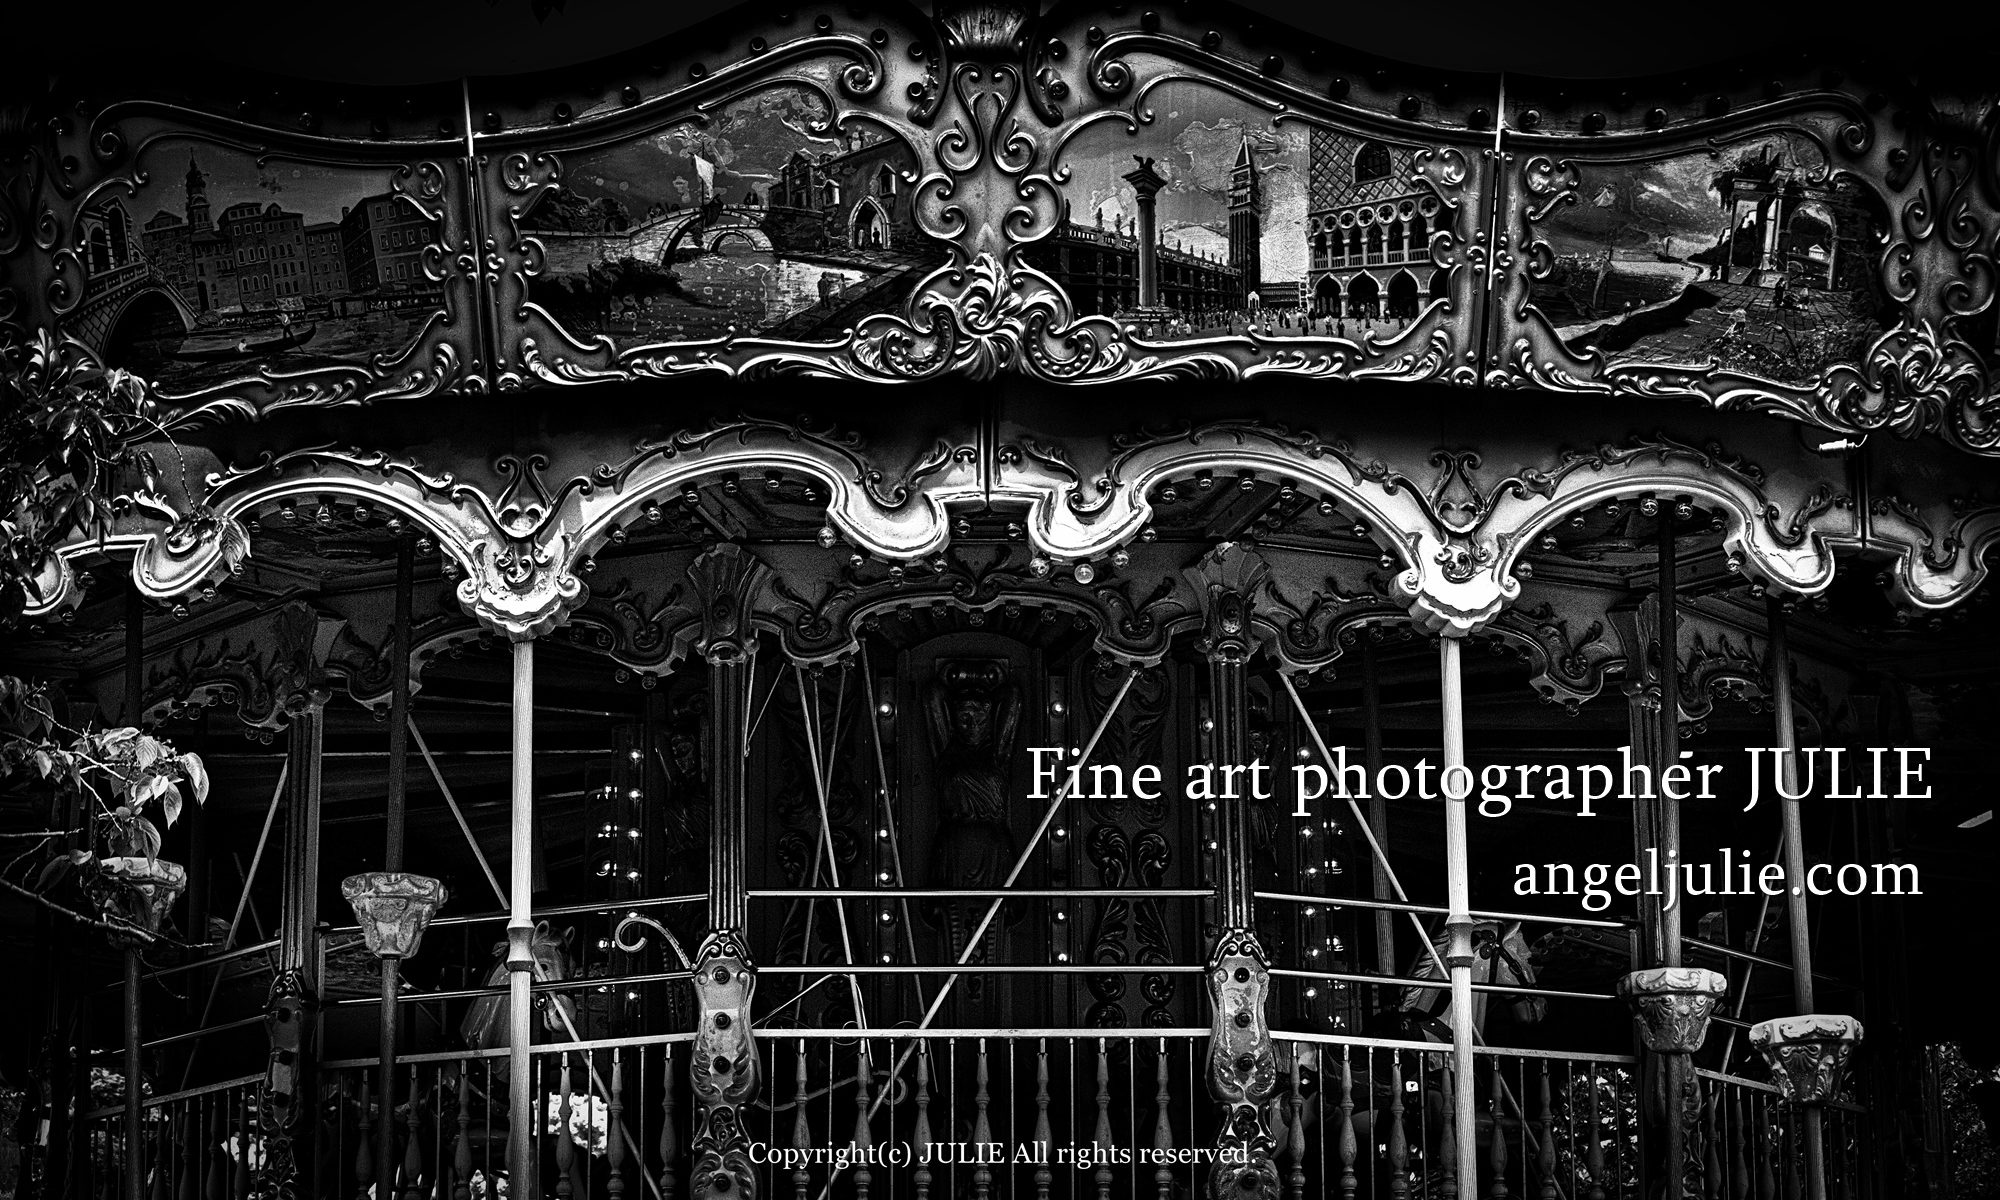 Fine art photographer JULIE | Portfolio site